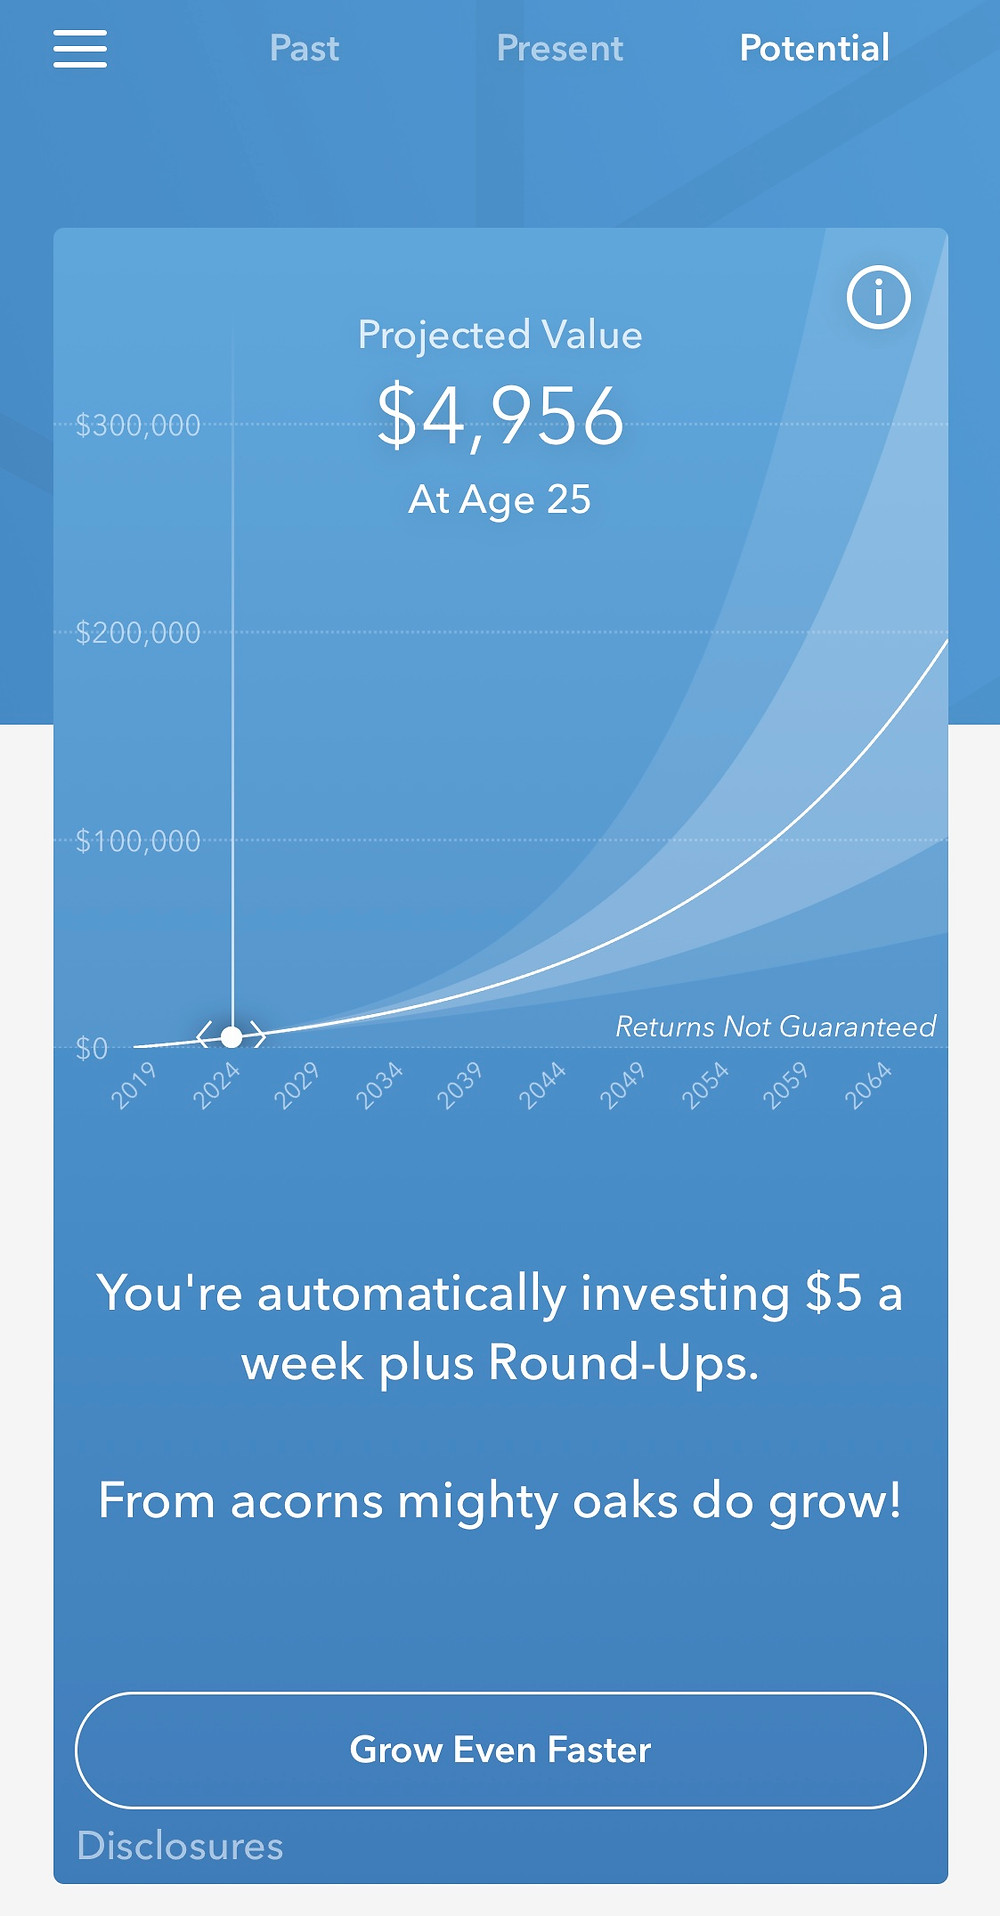 Acorns app showing projected value and growth over time